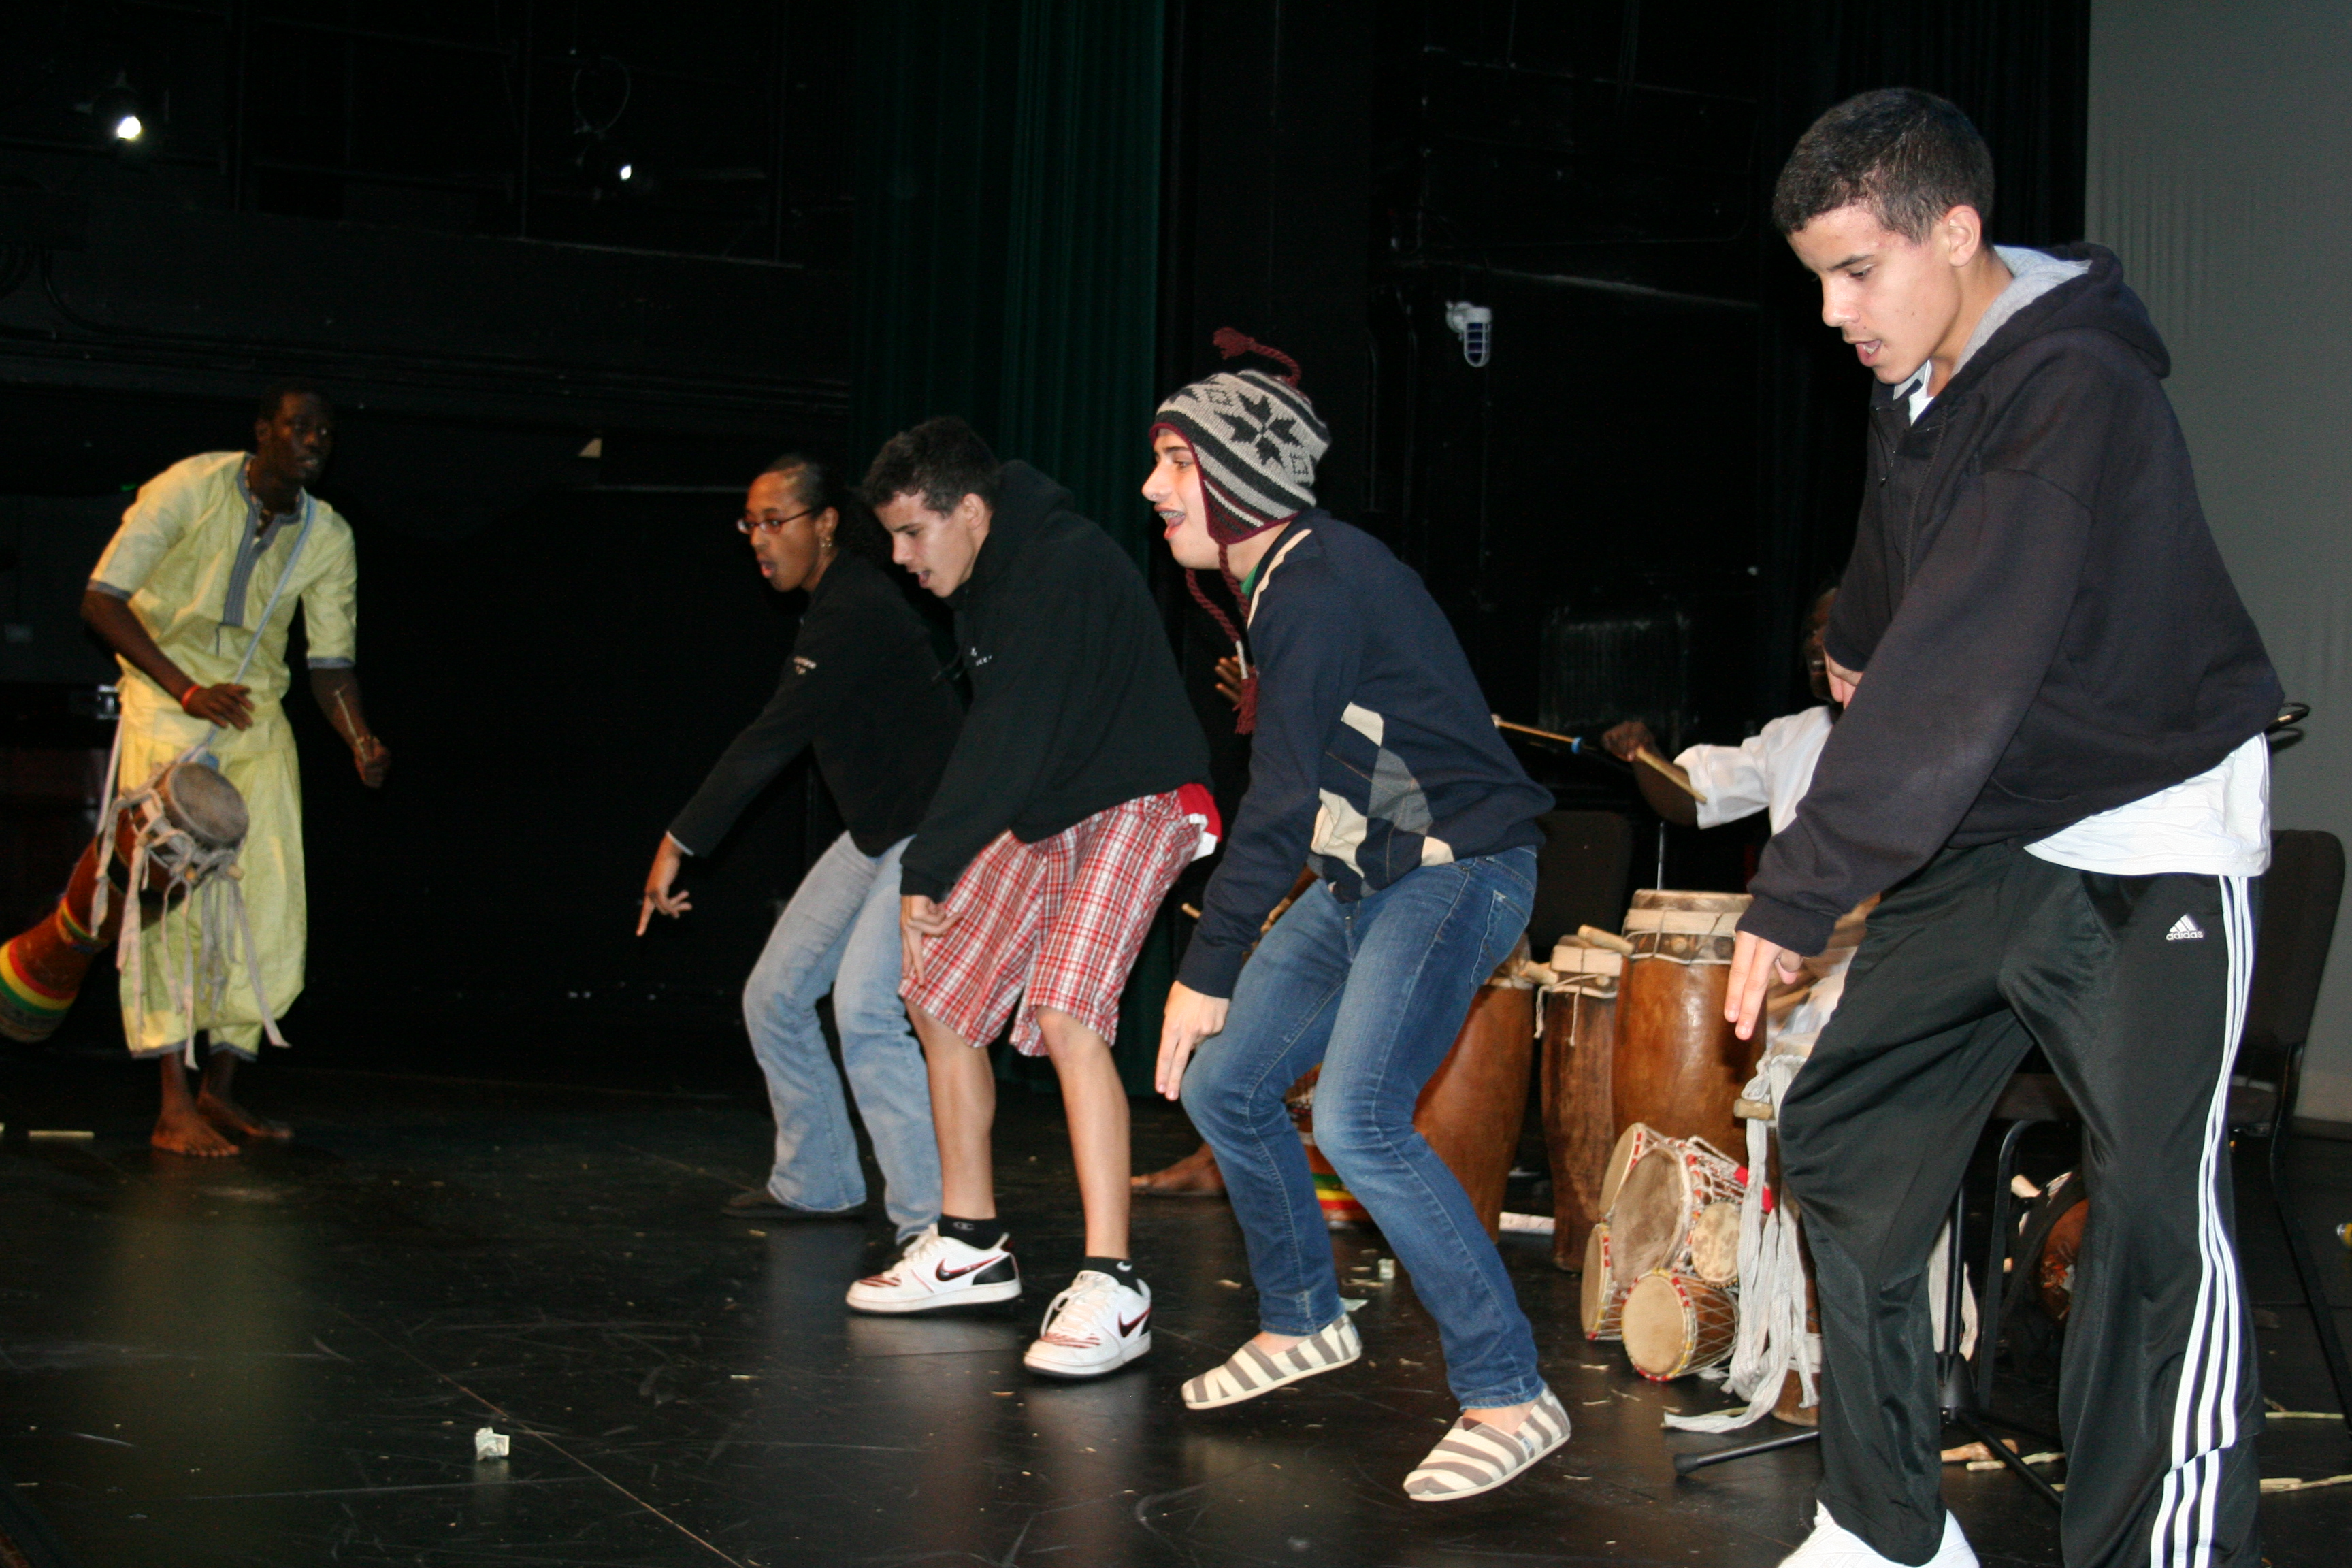 Dancers from the Gold School demonstrate their sabar steps.